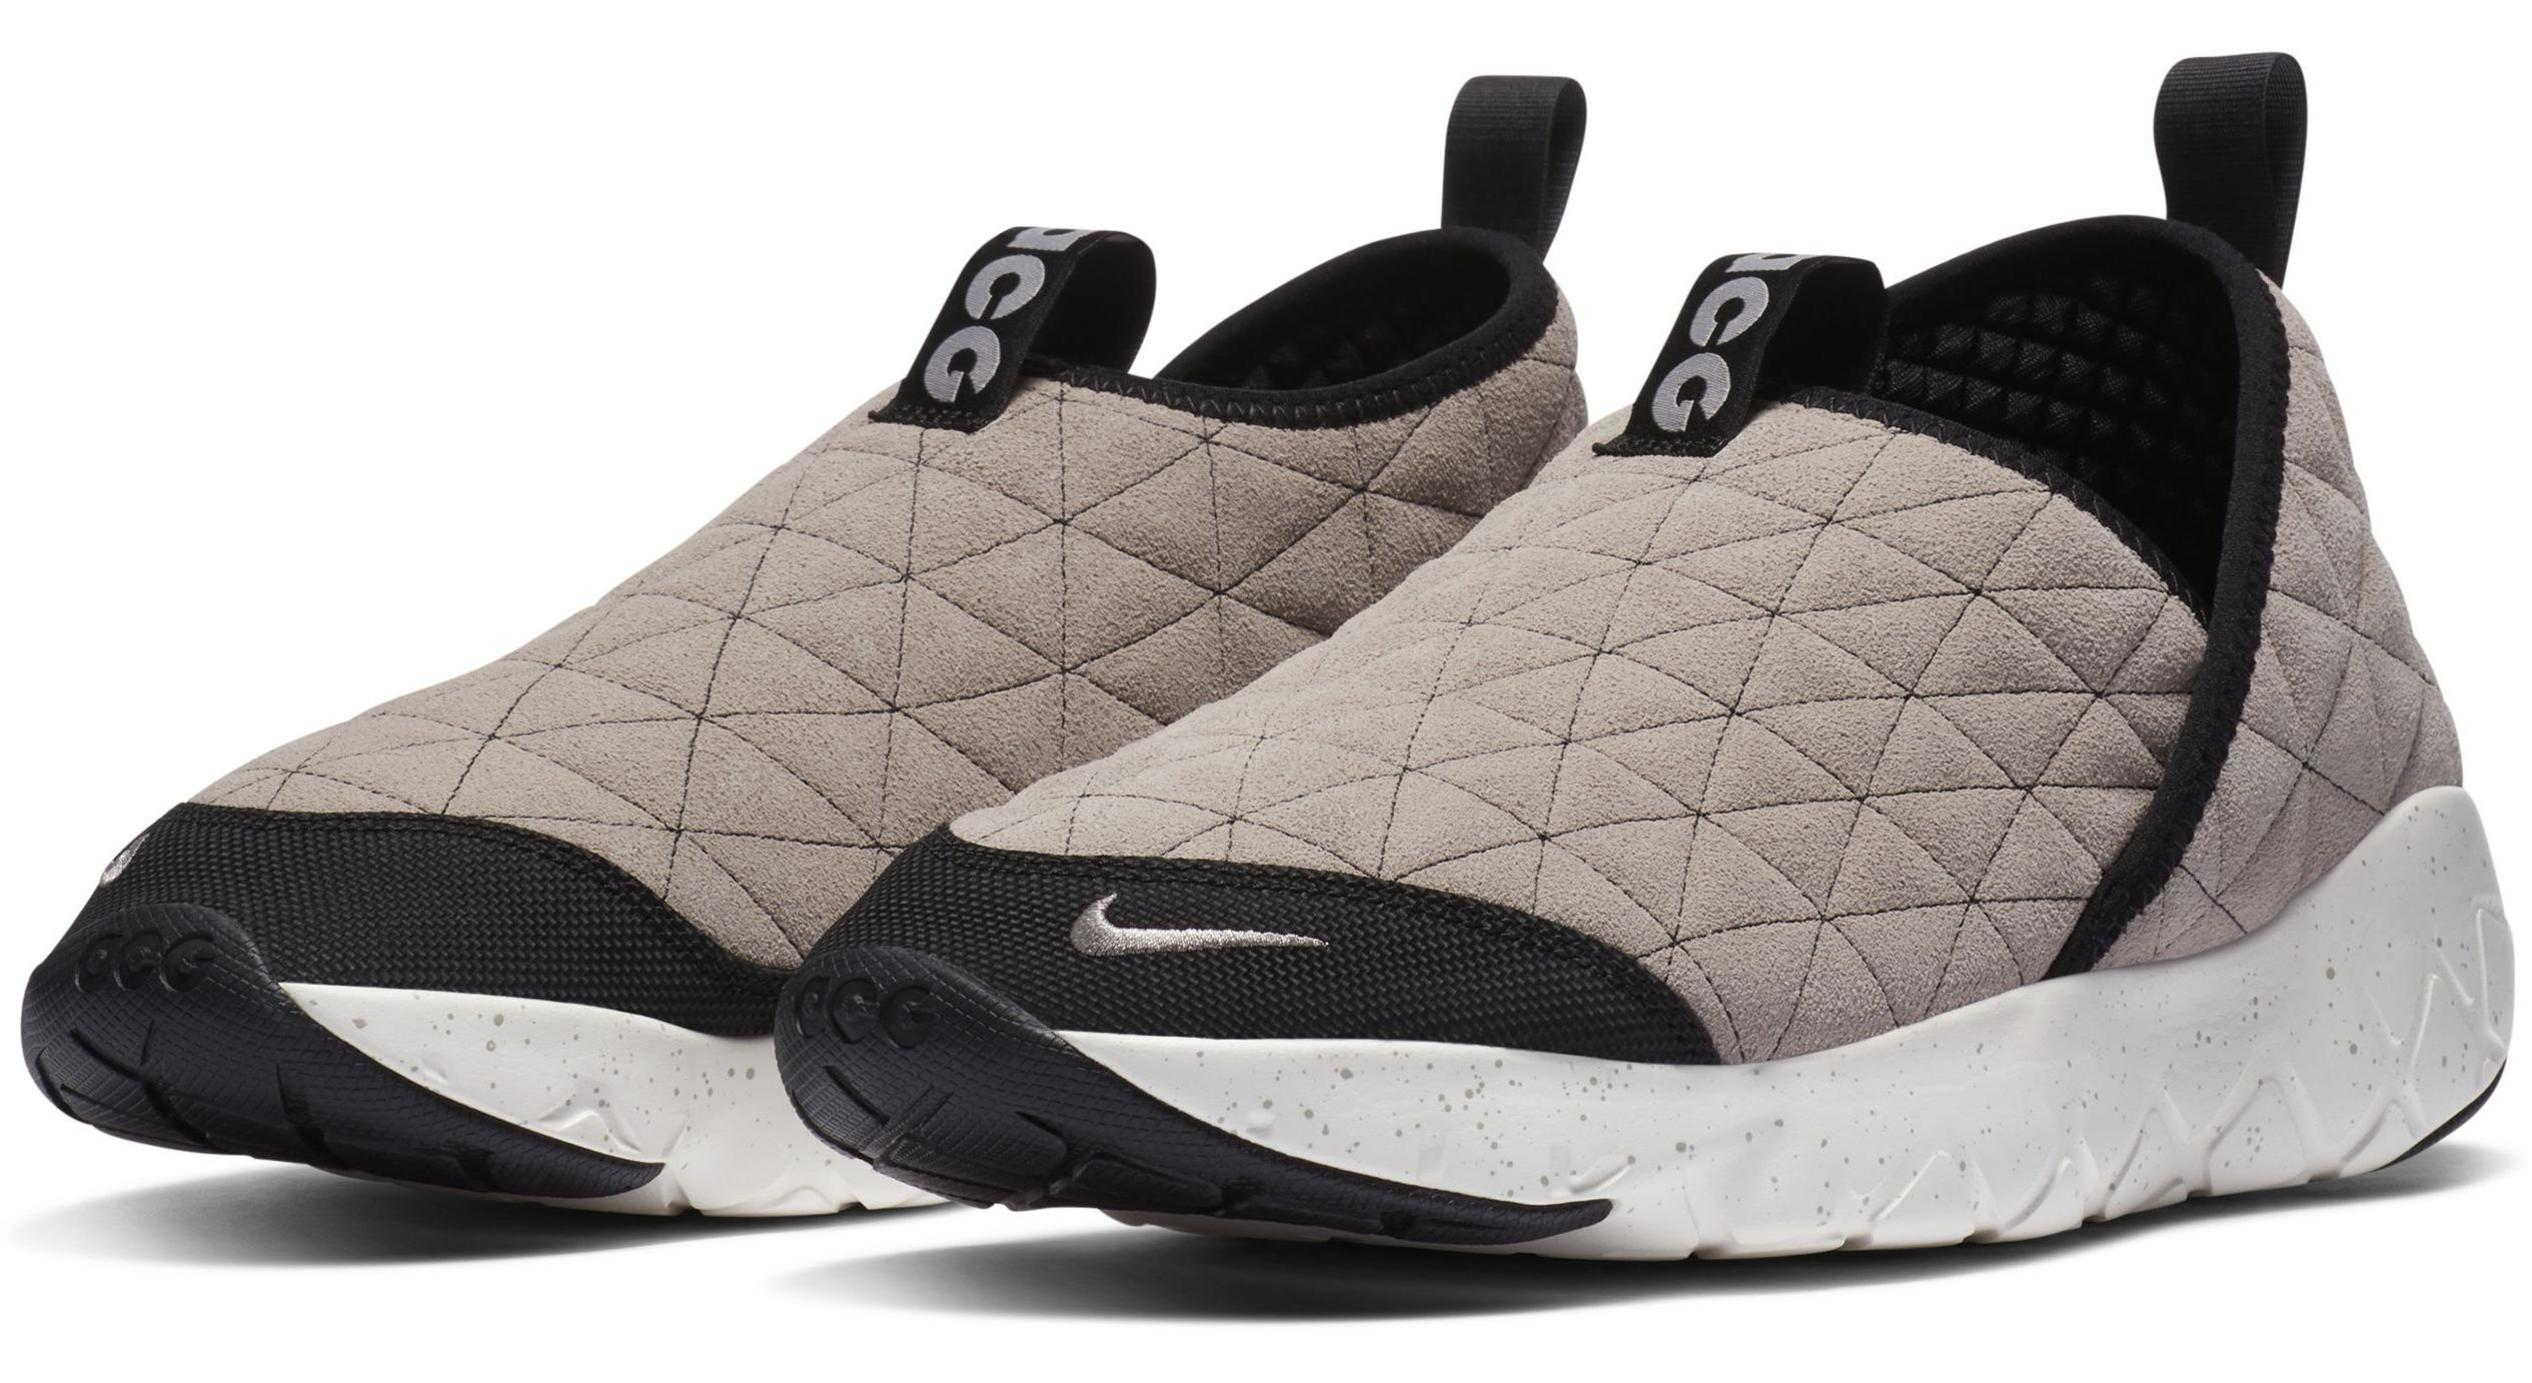 Nike ACG MOC 3.0 College Grey/Black/Sail/College Grey